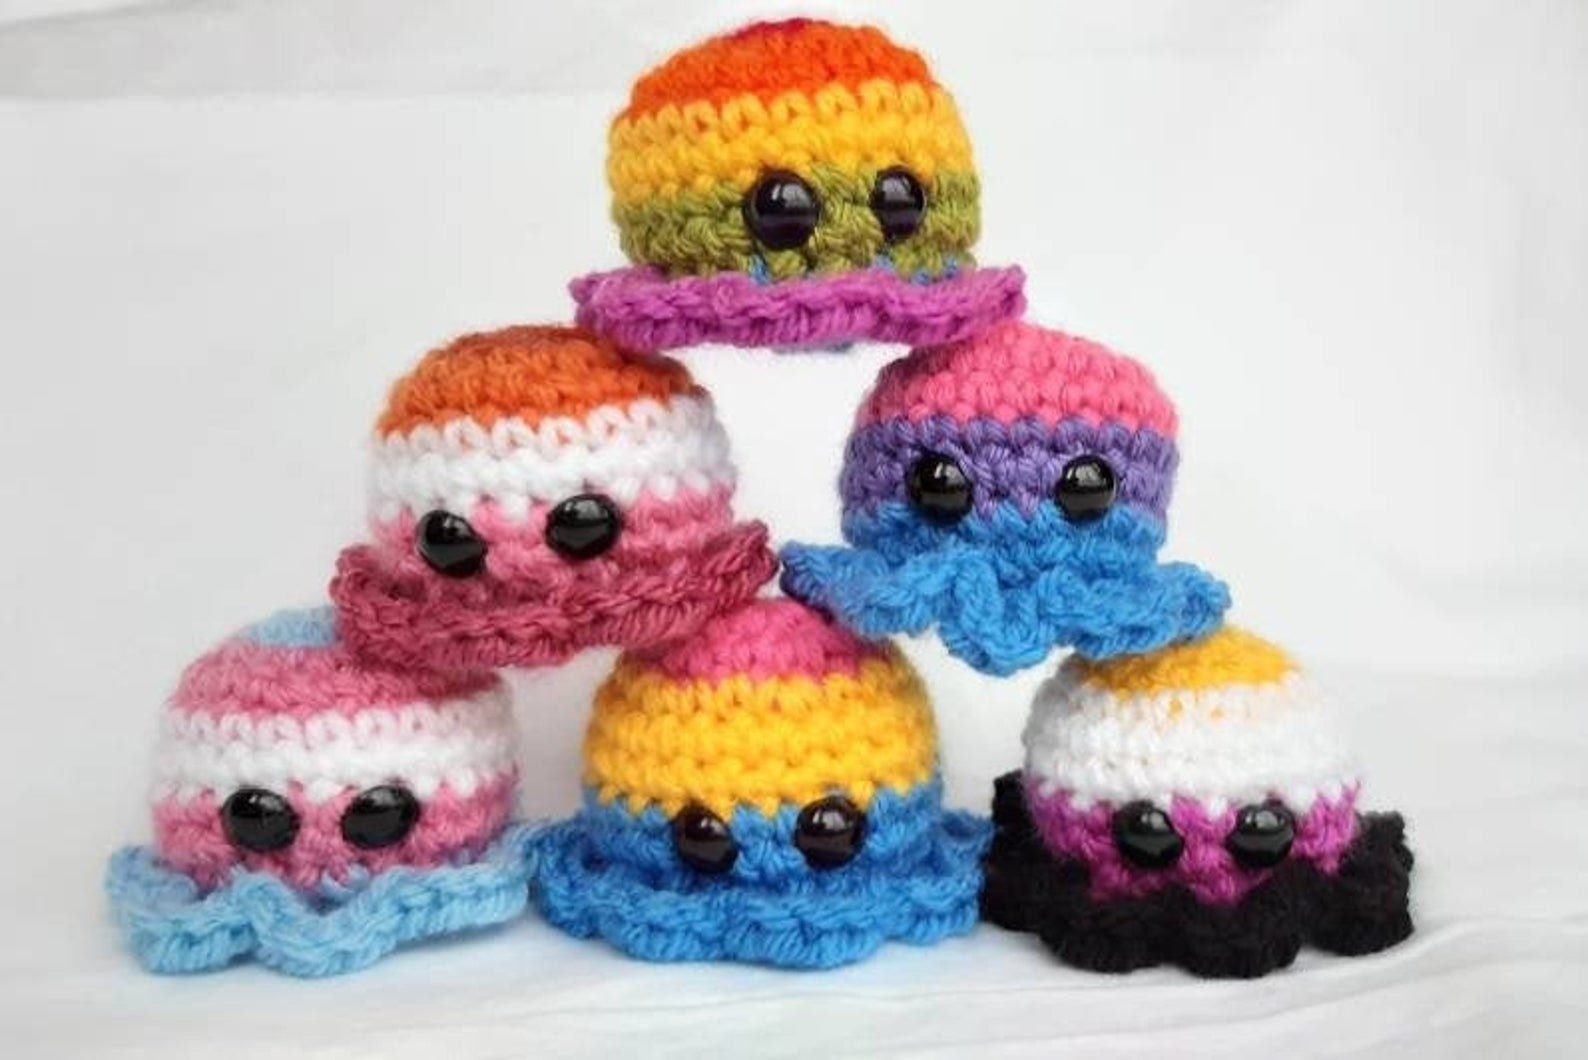 octopus-shaped beanies in various LGBT flag colors